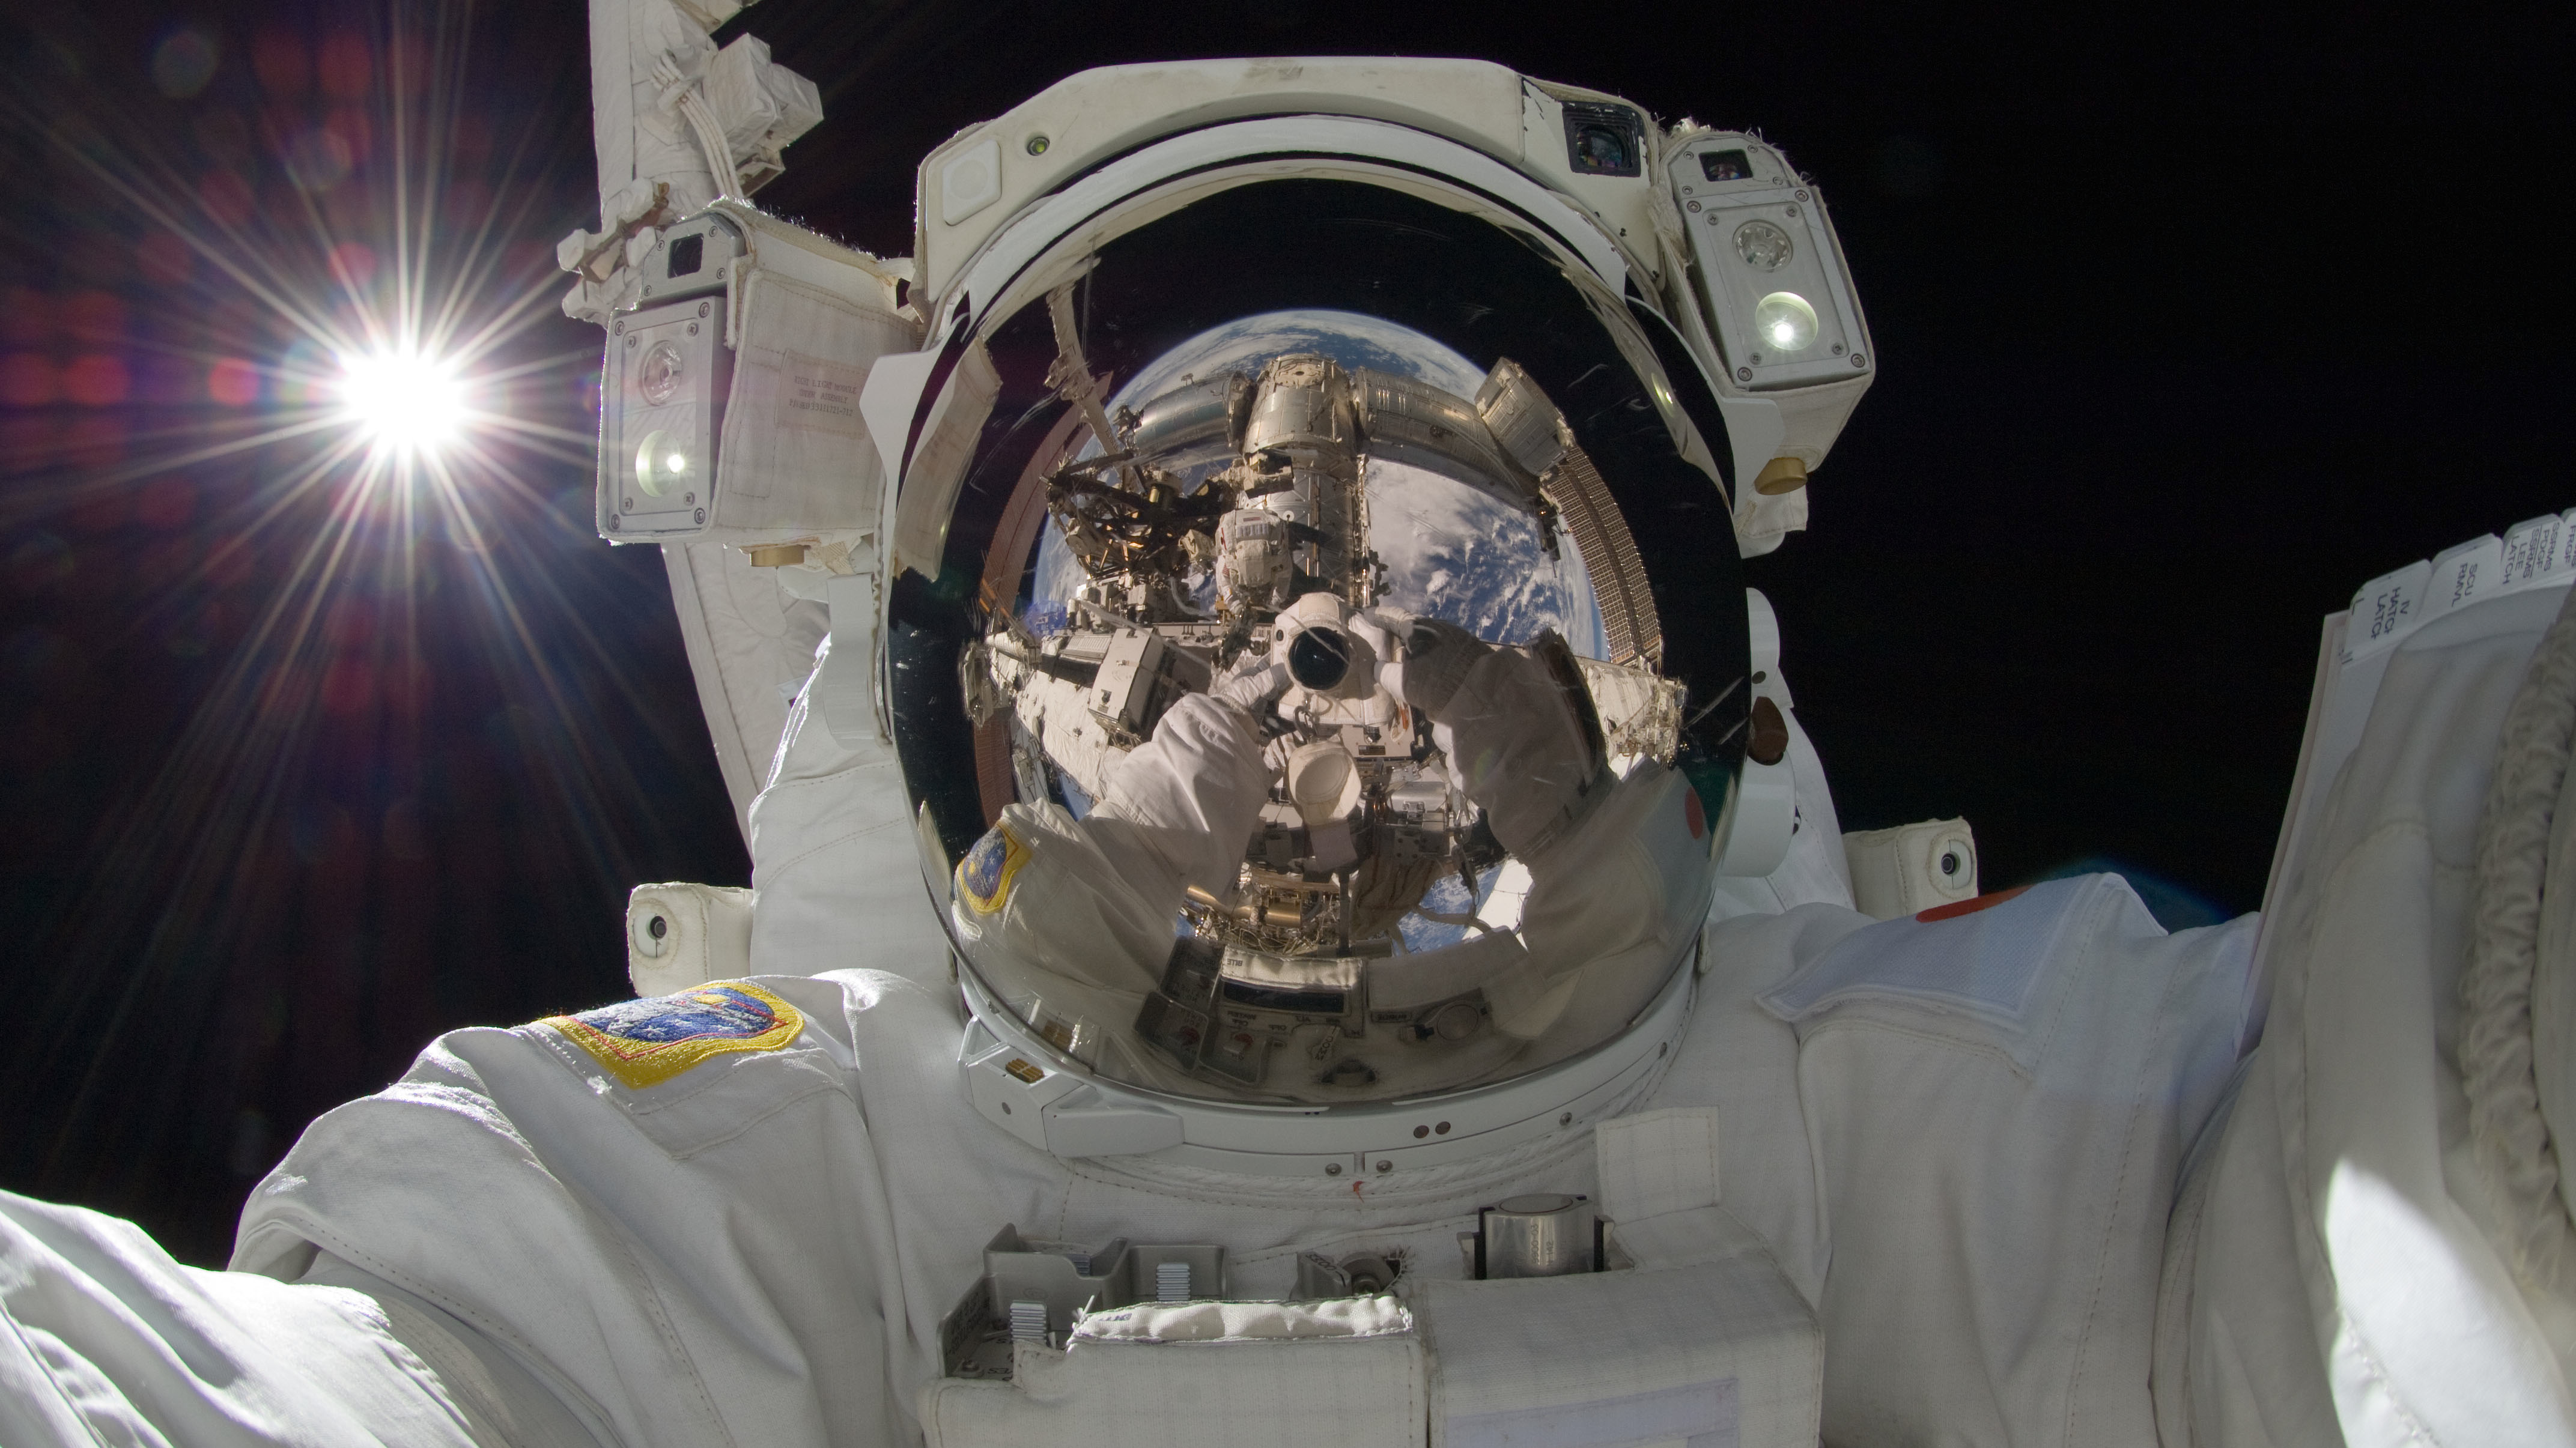 ISS032-E-025258 (5 Sept. 2012) ---Japan Aerospace Exploration Agency astronaut Aki Hoshide, Expedition 32 flight engineer, uses a digital still camera to expose a photo of his helmet visor during the mission's third session of extravehicular activity (EVA). During the six-hour, 28-minute spacewalk, Hoshide and NASA astronaut Sunita Williams (visible in the reflections of Hoshide's helmet visor), flight engineer, completed the installation of a Main Bus Switching Unit (MBSU) that was hampered last week by a possible misalignment and damaged threads where a bolt must be placed. They also installed a camera on the International Space Station's robotic arm, Canadarm2. The bright sun is visible at left.